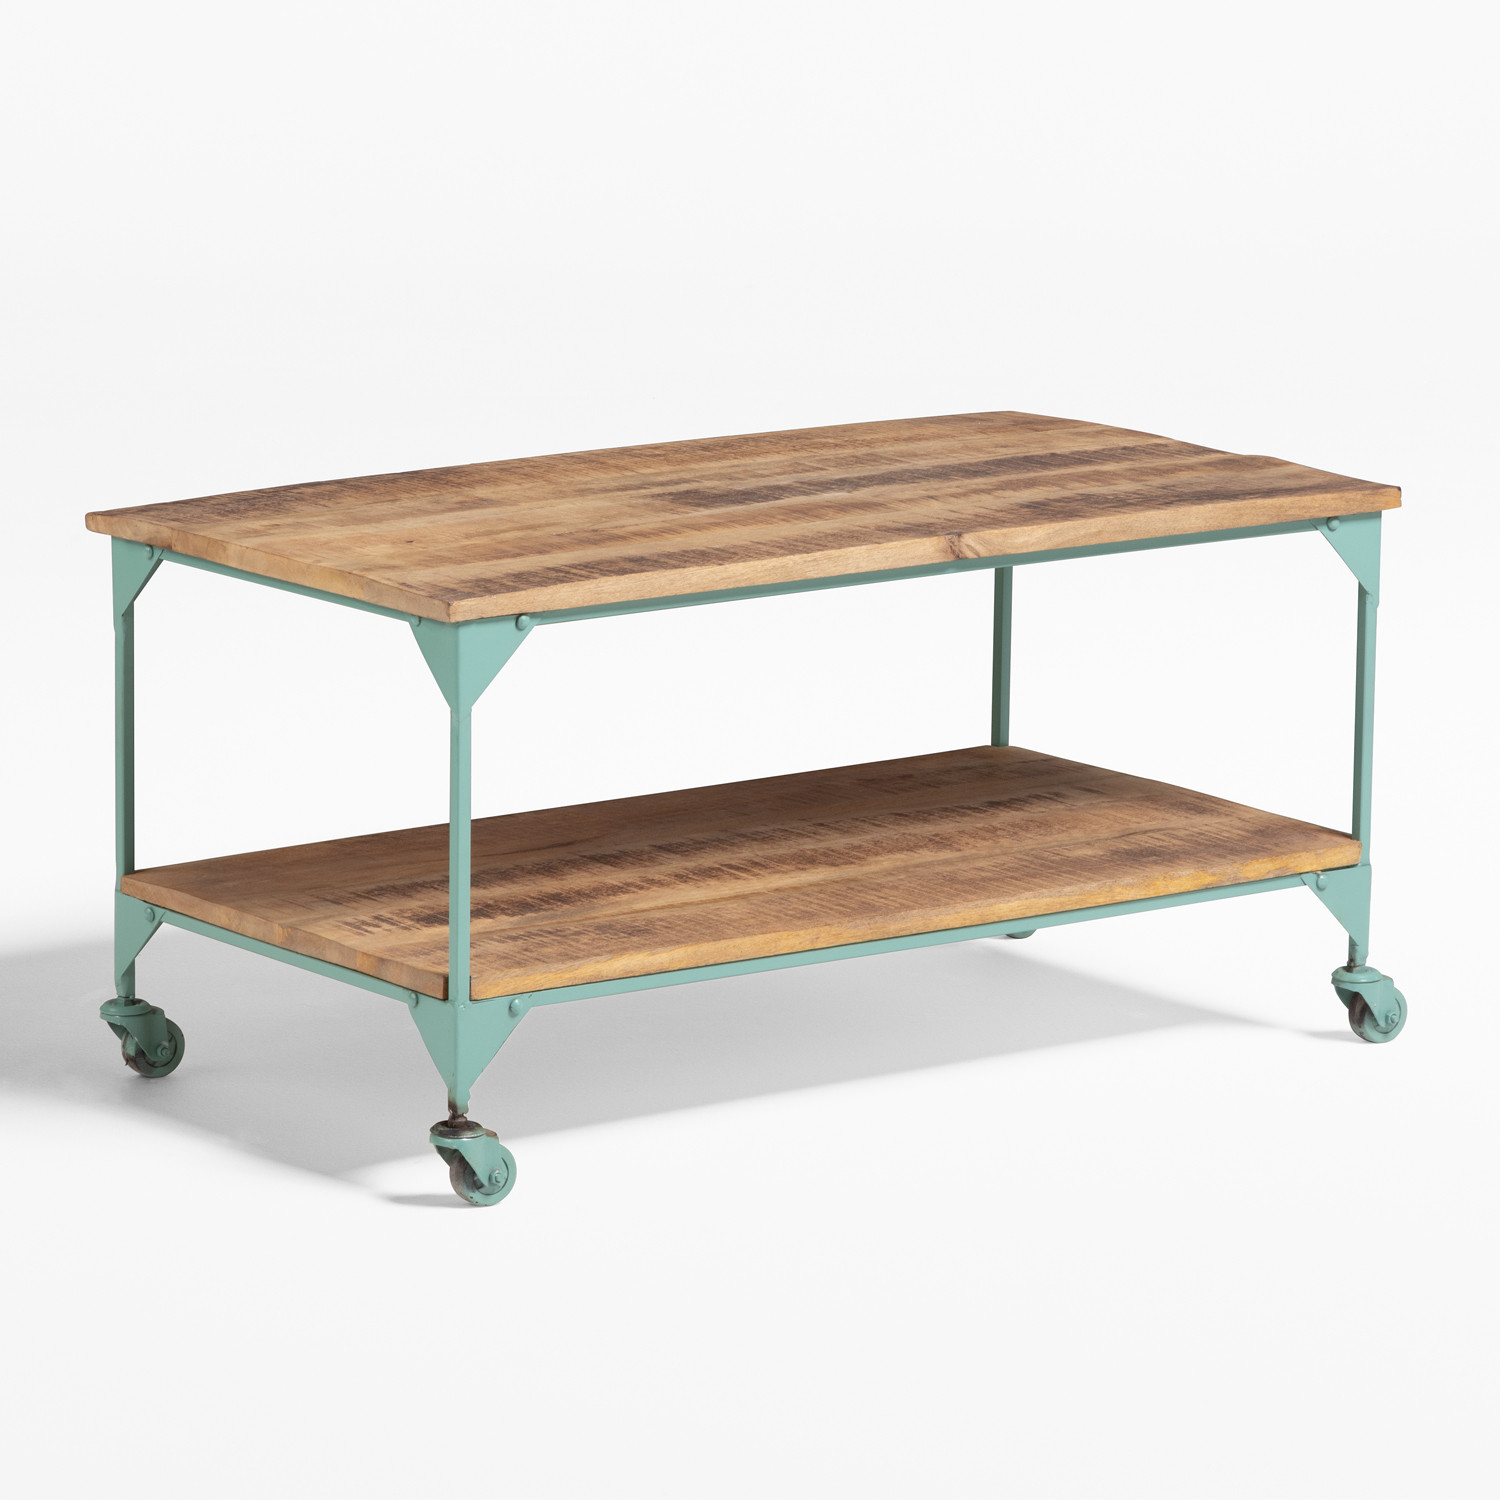 Trada Coffee Table with Wheels, gallery image 1